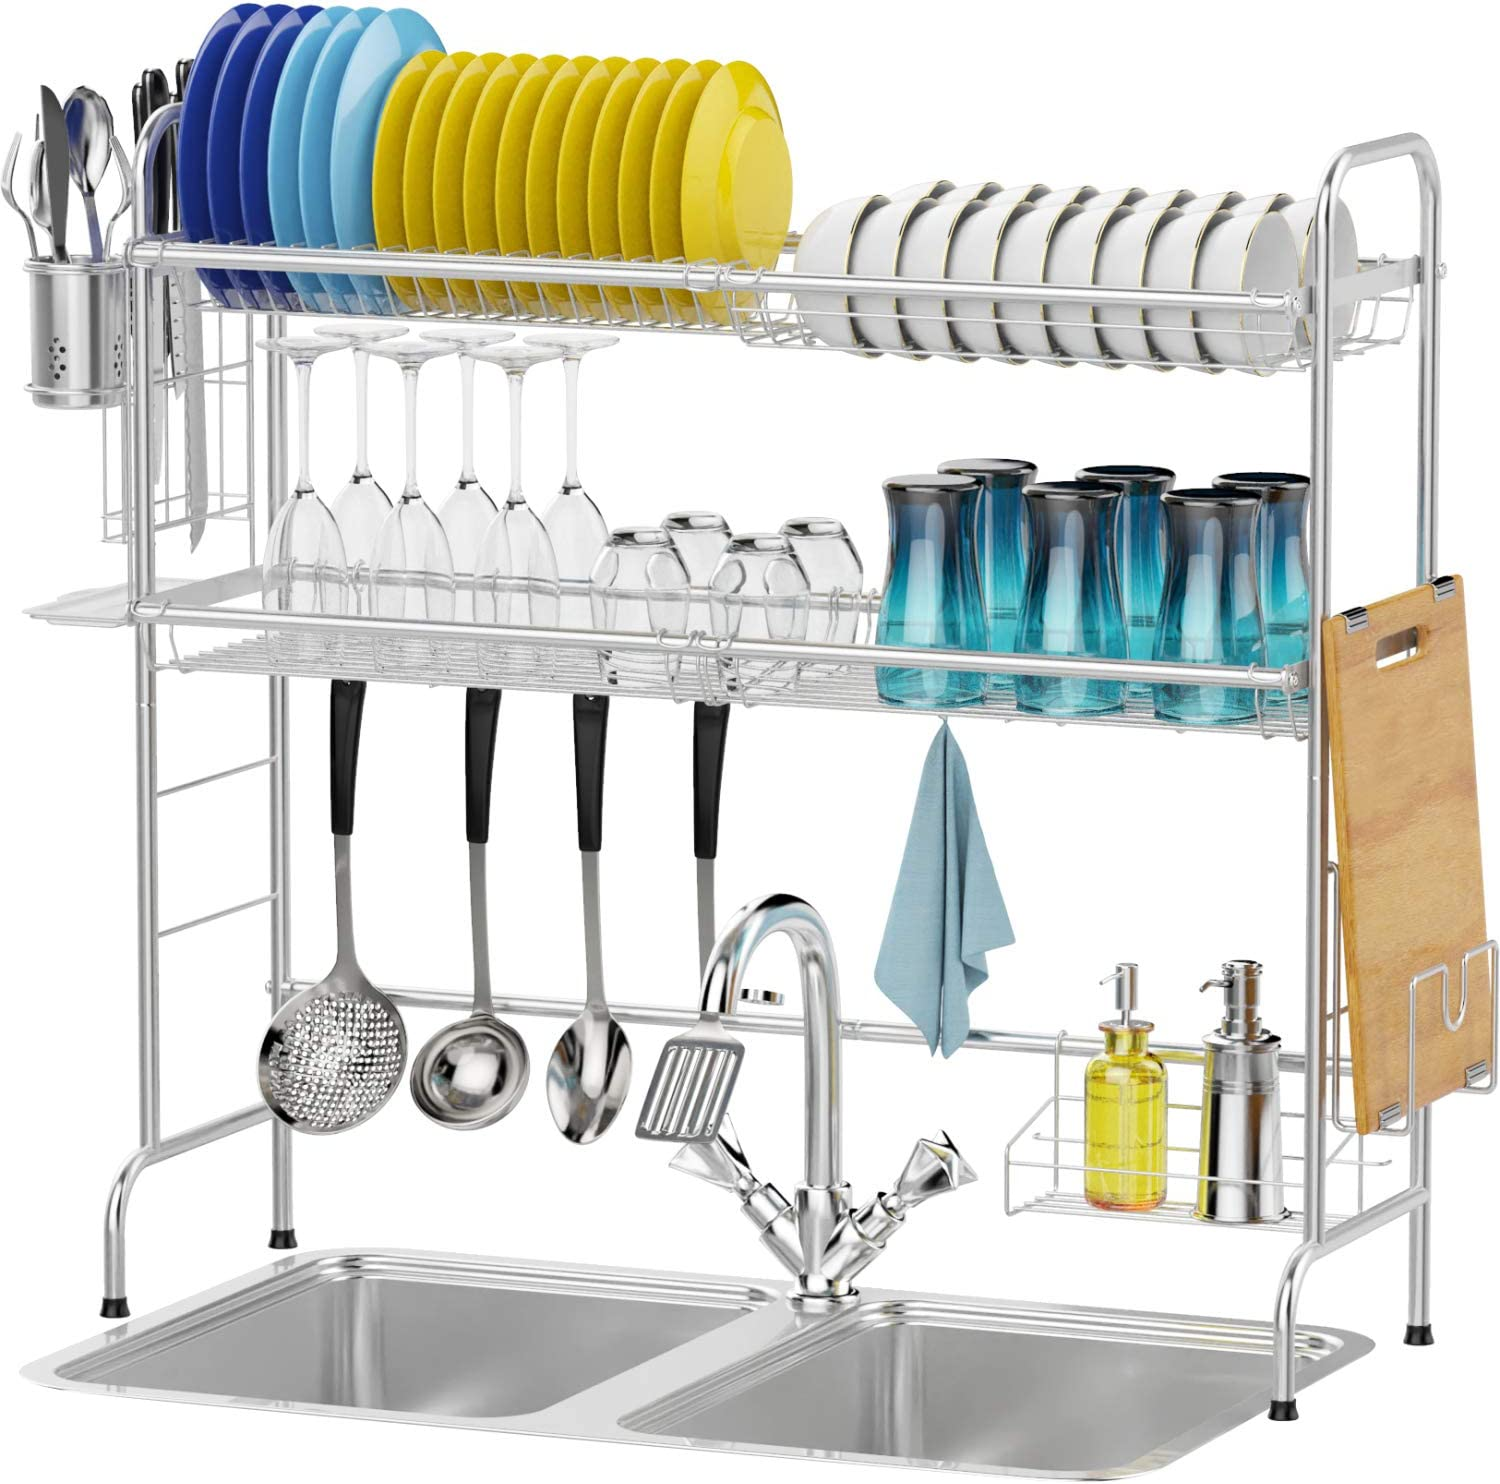 Over the Sink Dish Drying Rack, Packism 2 Tier Dish Rack with Utensil Holder Large Over Sink Dish Rack Shelf, Stainless Steel Dish Drainer for Kitchen Counter Top, Non-Slip, Anti-Rust, Silver